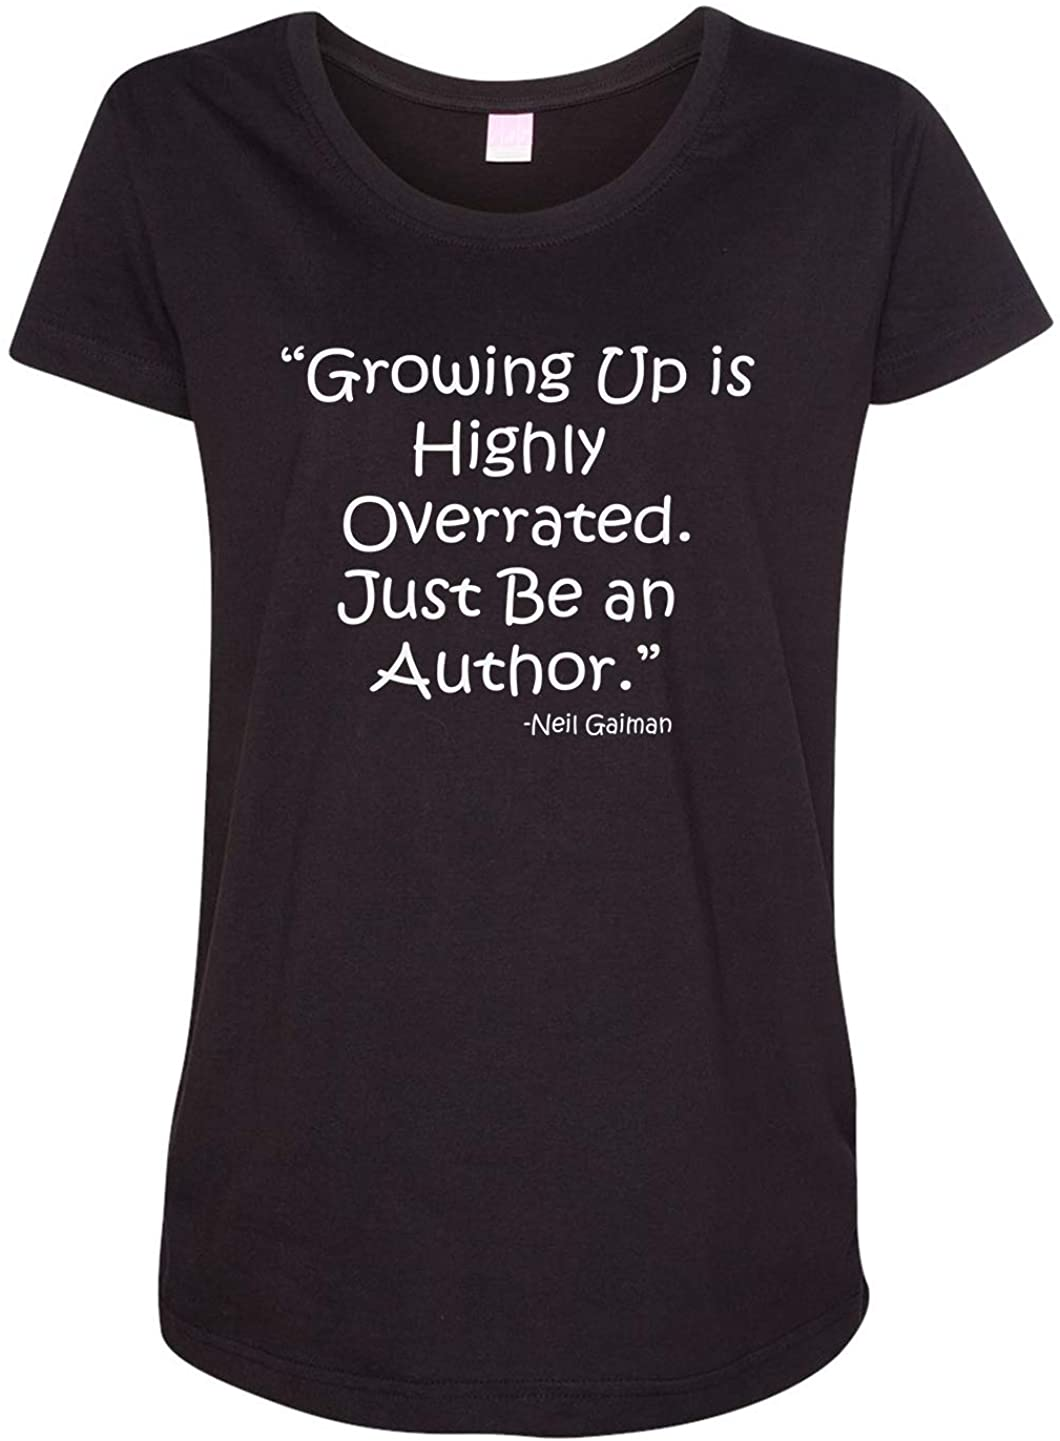 Tenacitee Ladies Growing Up is Highly Overrated Maternity Shirt